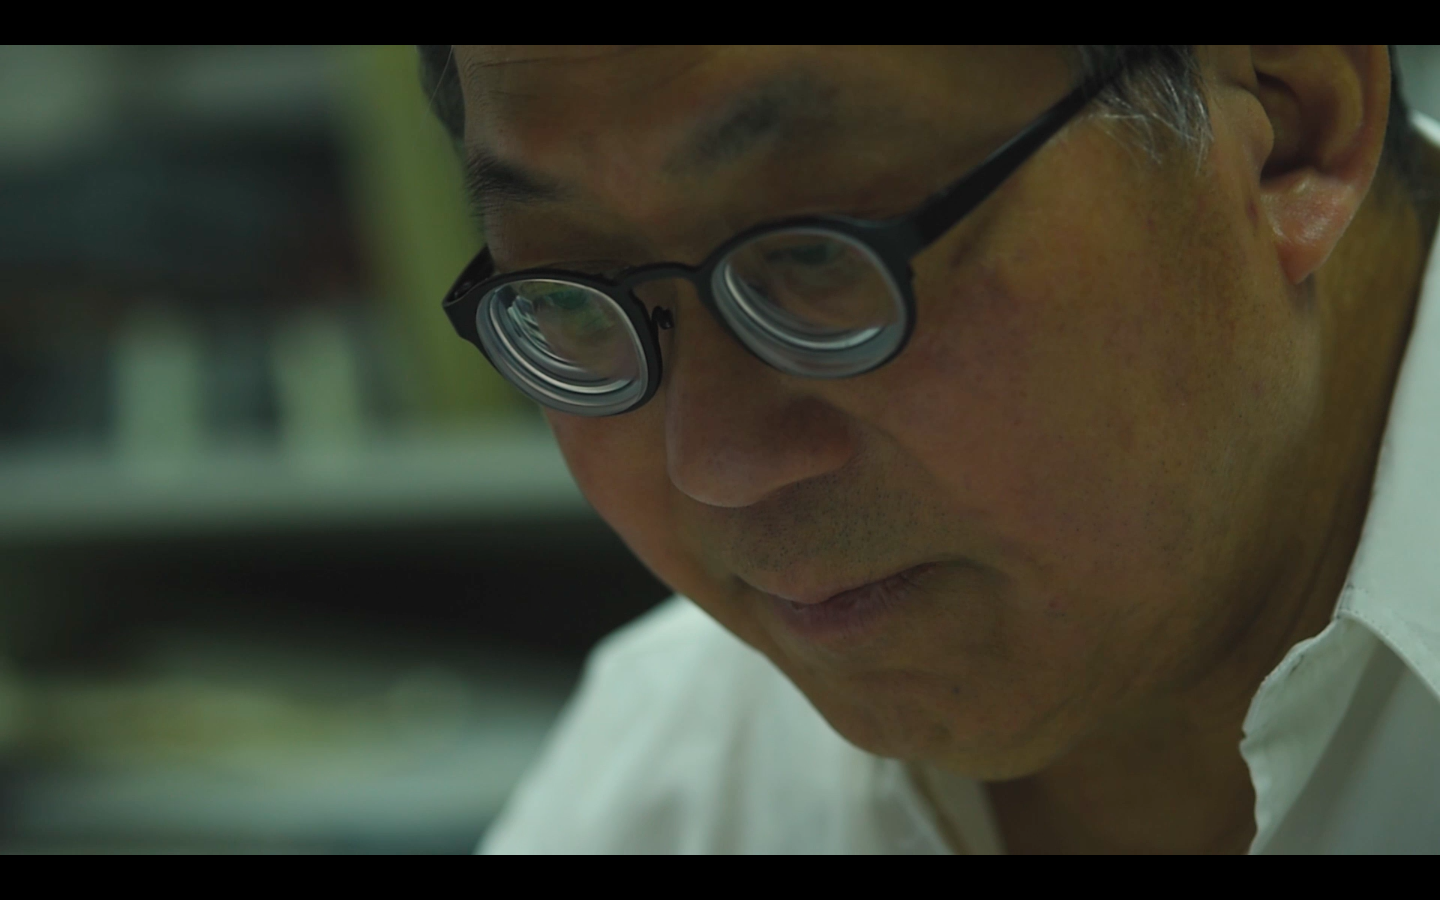 MARTELL SPECIAL: BE CURIOUS SERIES FEAT. ECO-ARCHITECT KEN YEANG